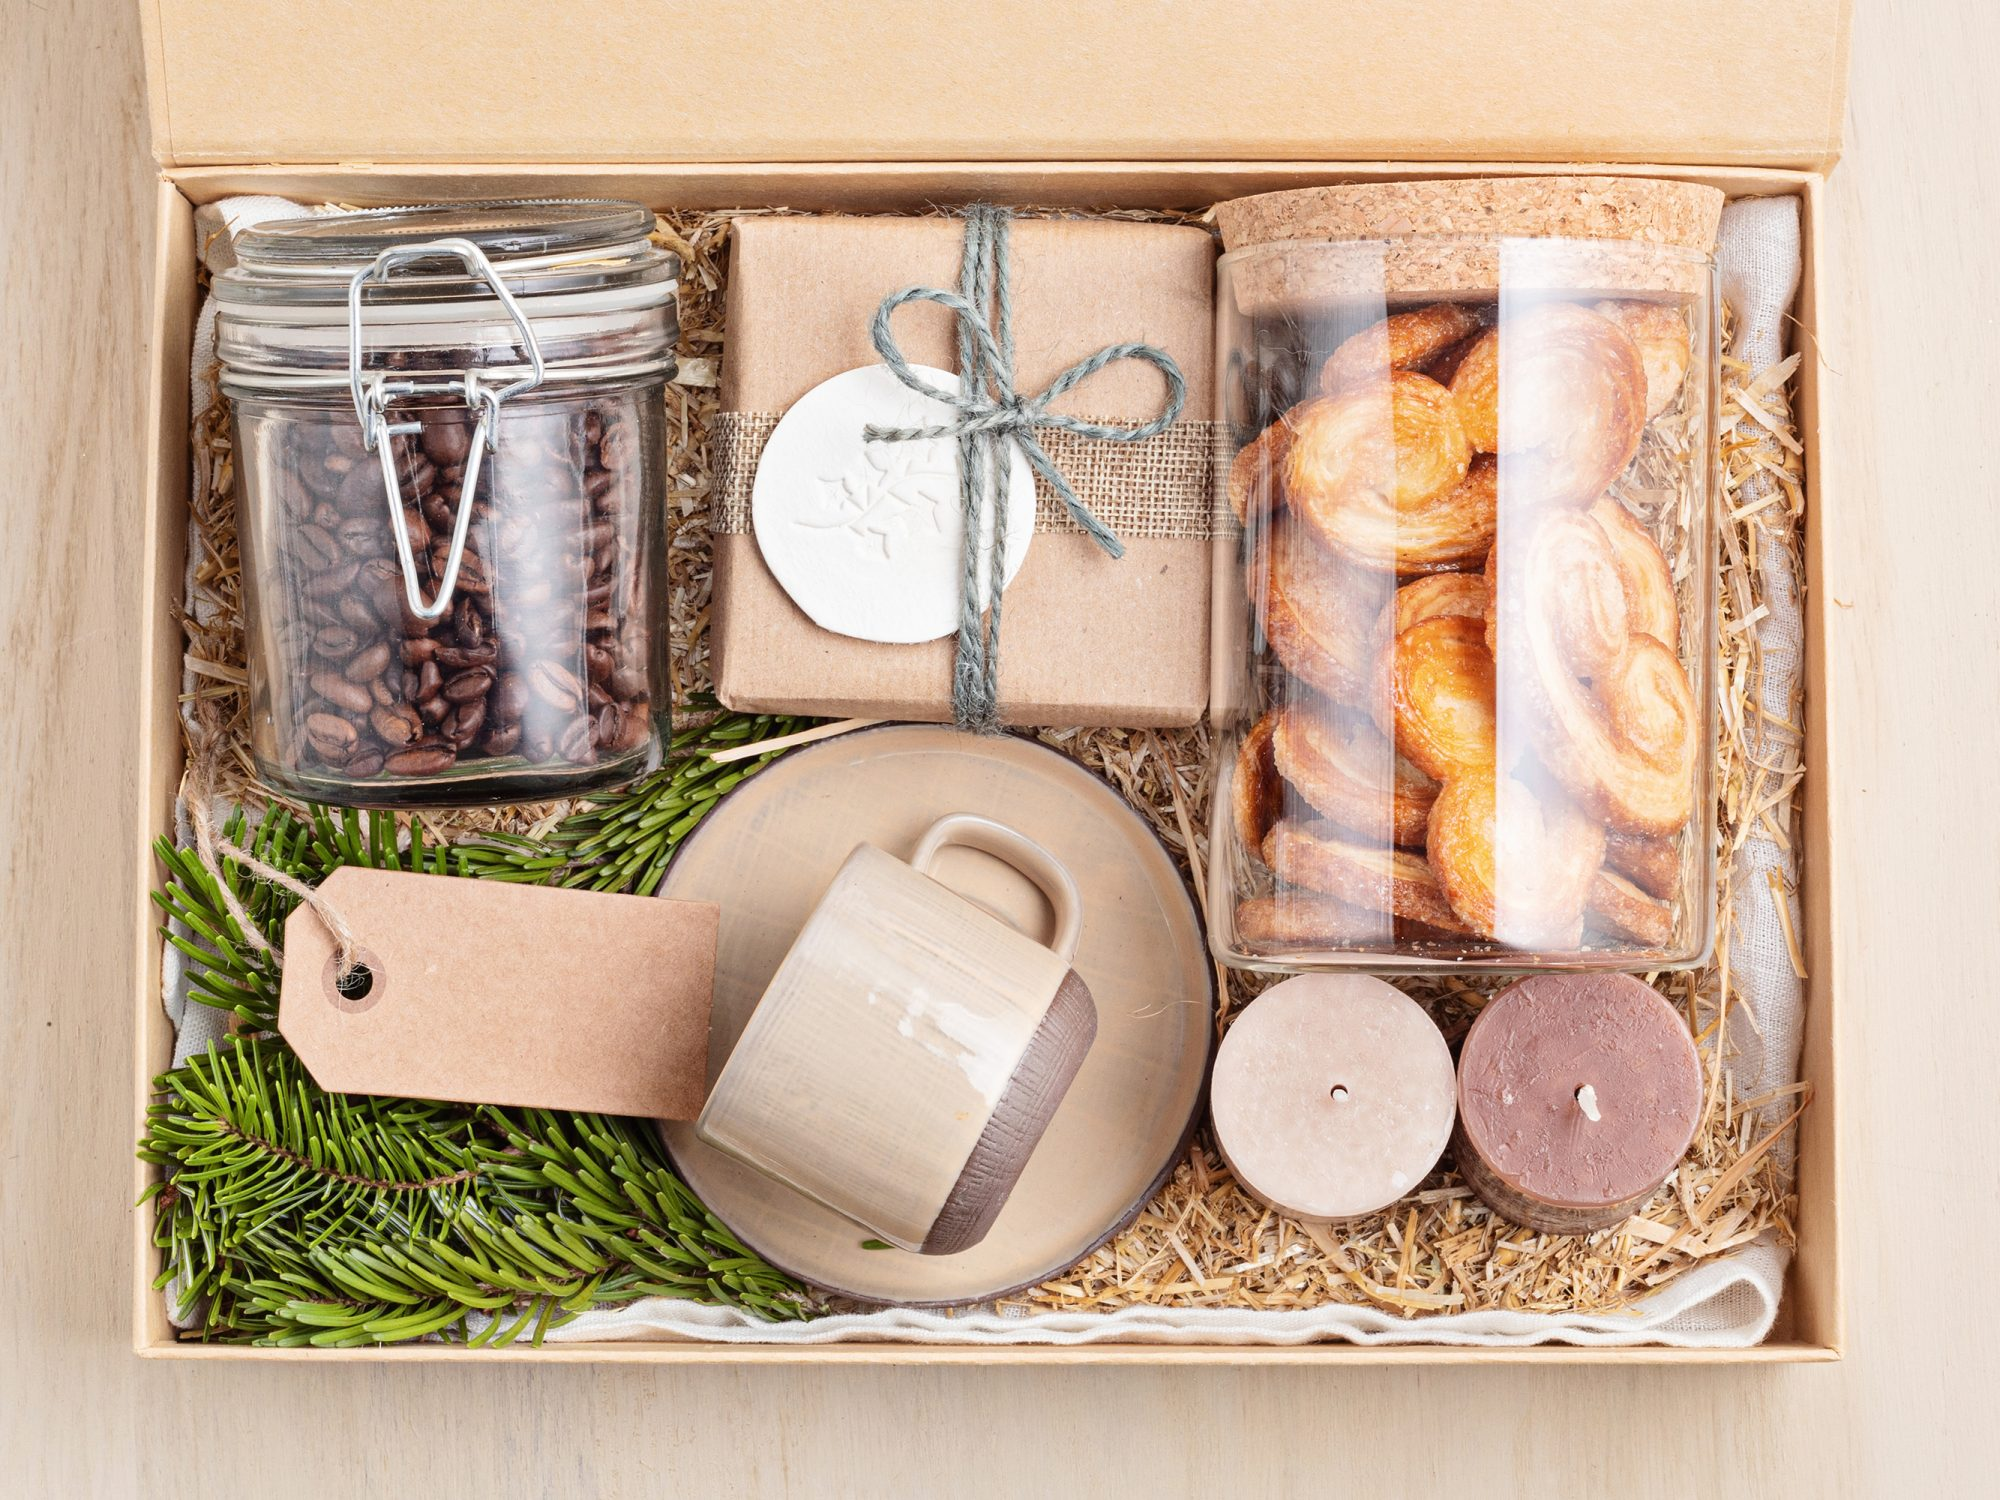 Preparing care package, seasonal gift box with coffee, cookies, candles and cup